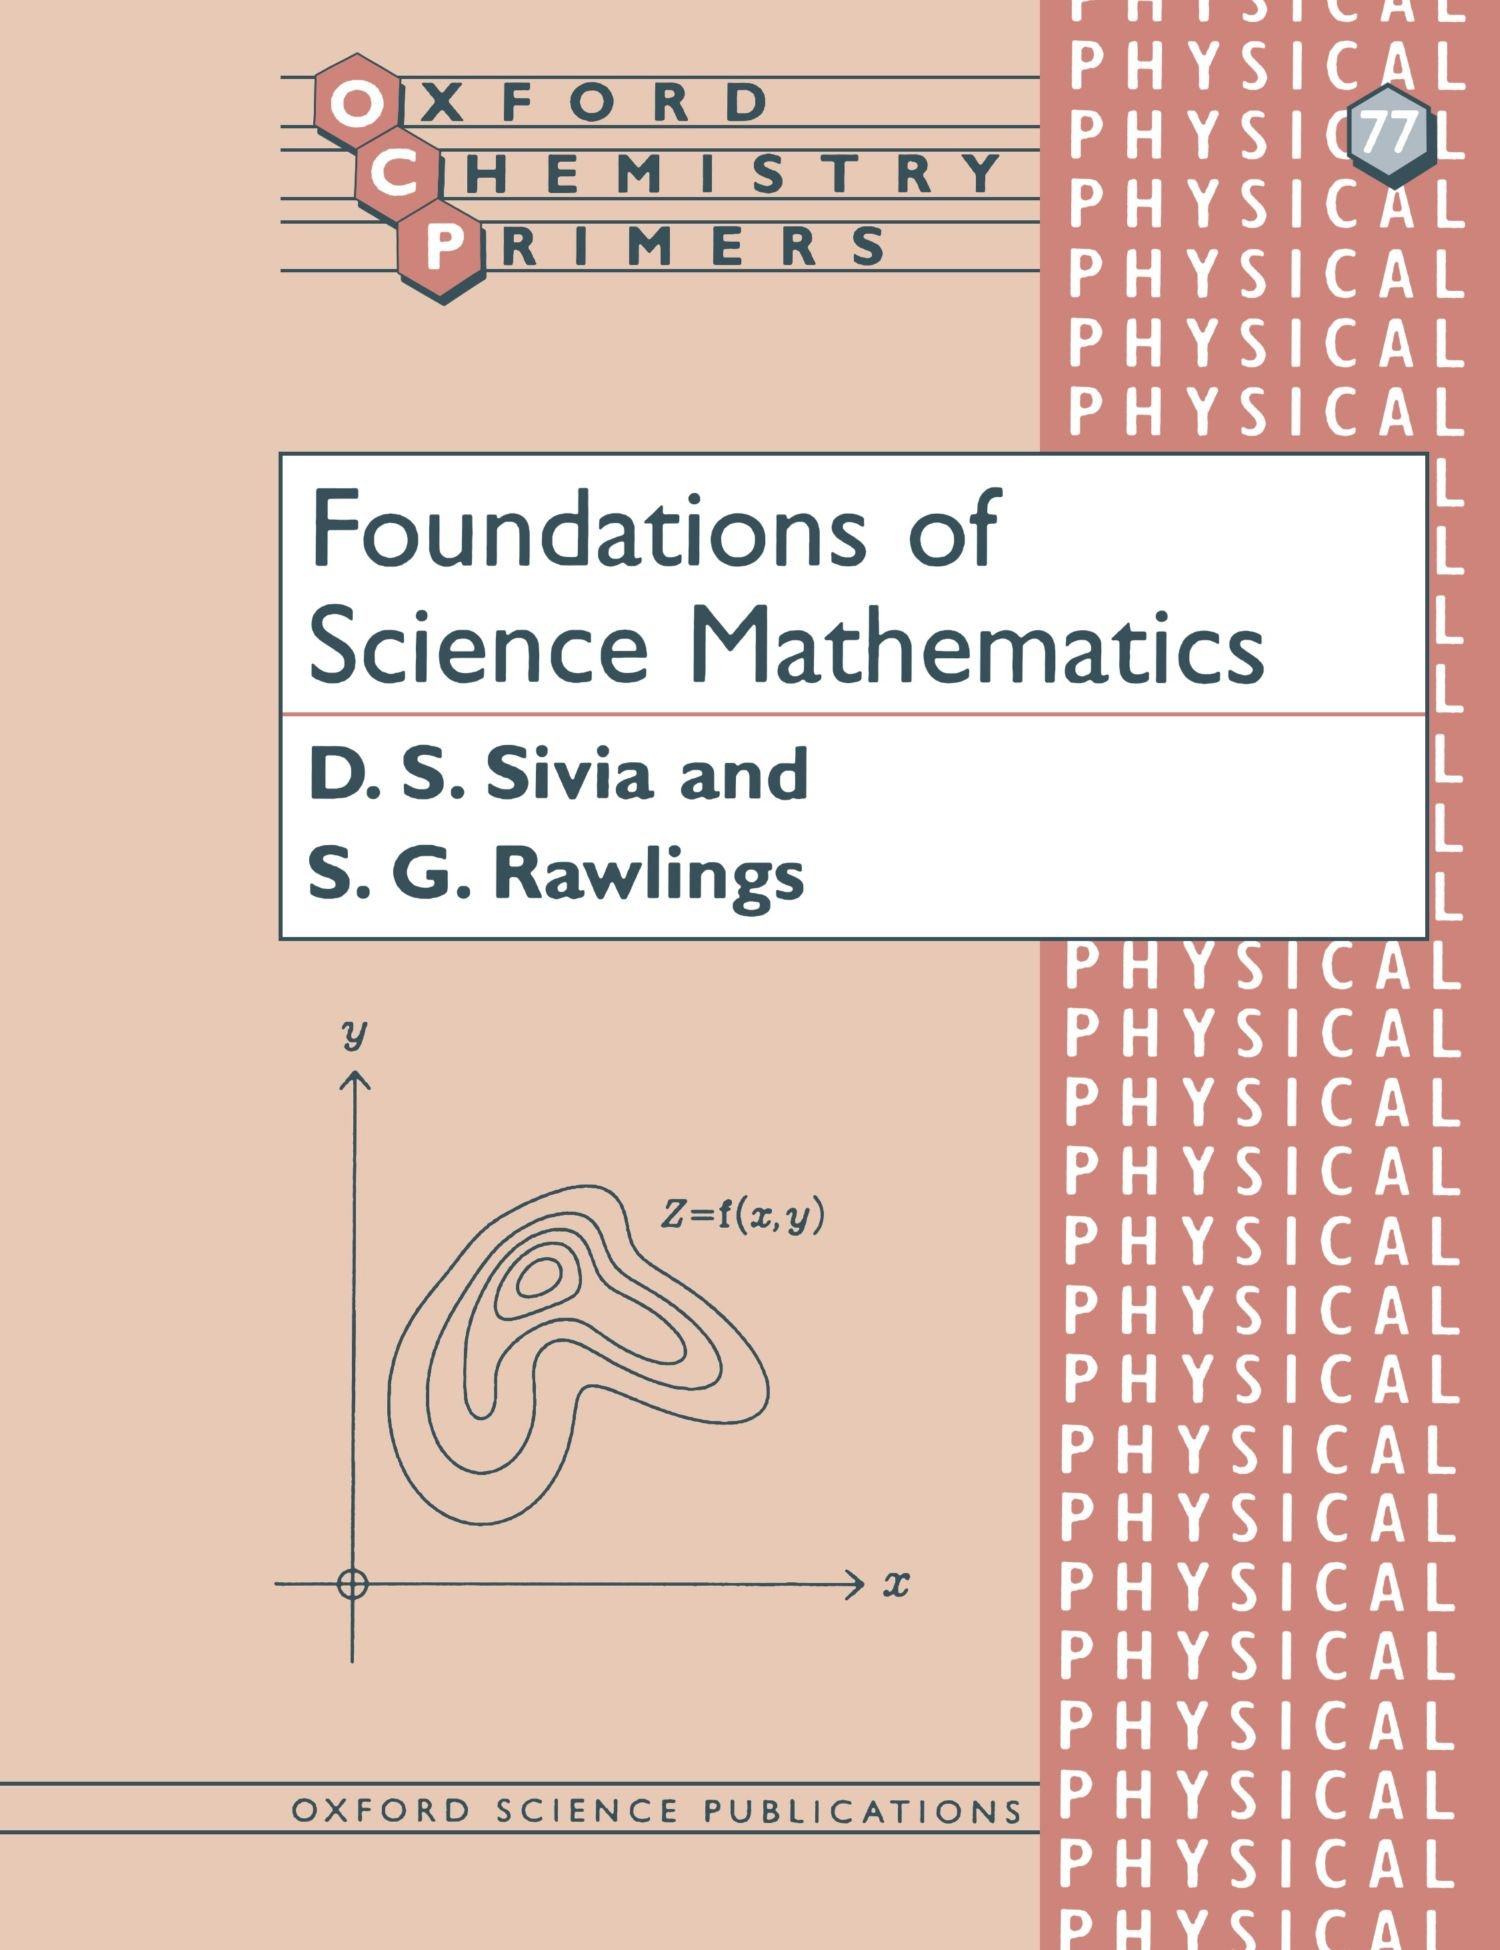 Foundations Of Science Mathematics (Oxford Chemistry Primers, 77)